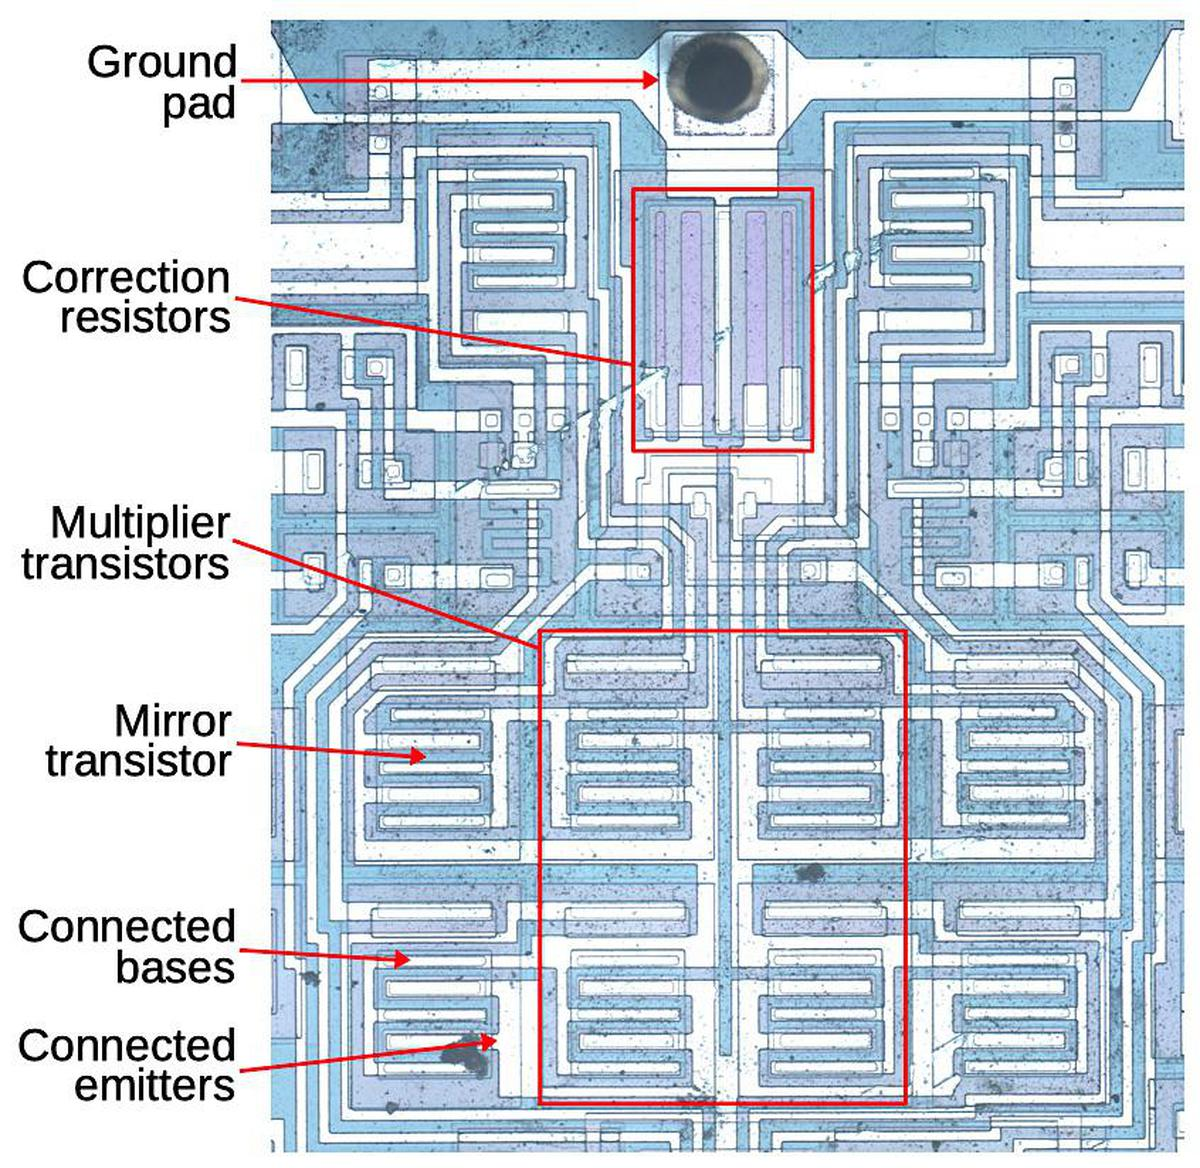 The main multiplier consists of four transistors. Each transistor has a mirror transistor generating the same current, used to correct for emitter resistance.